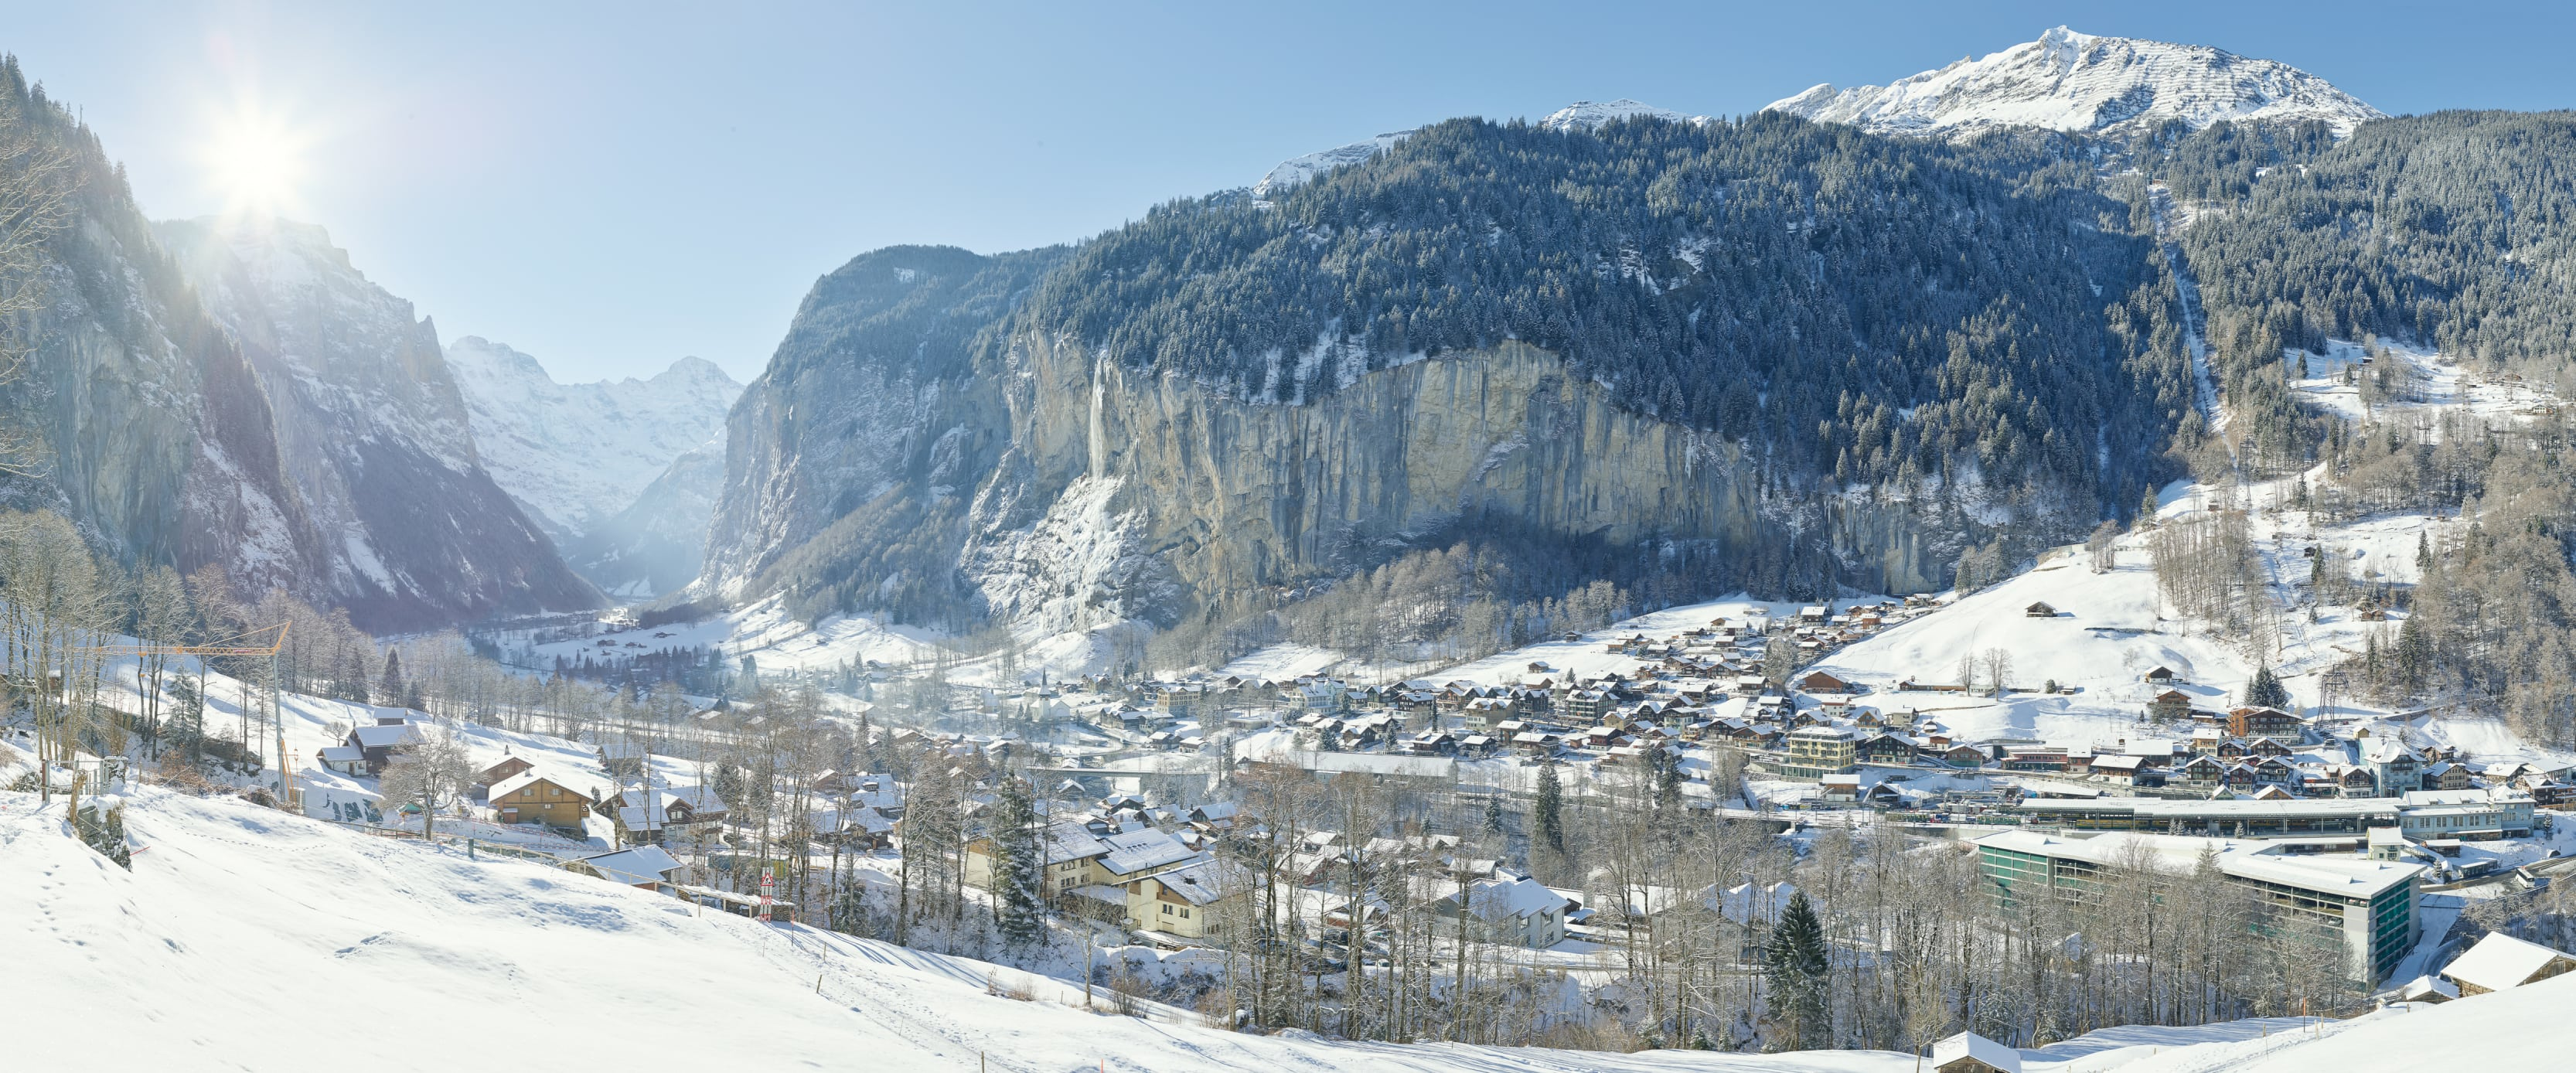 Lauterbrunnen Winter Staubbachfall Panorama